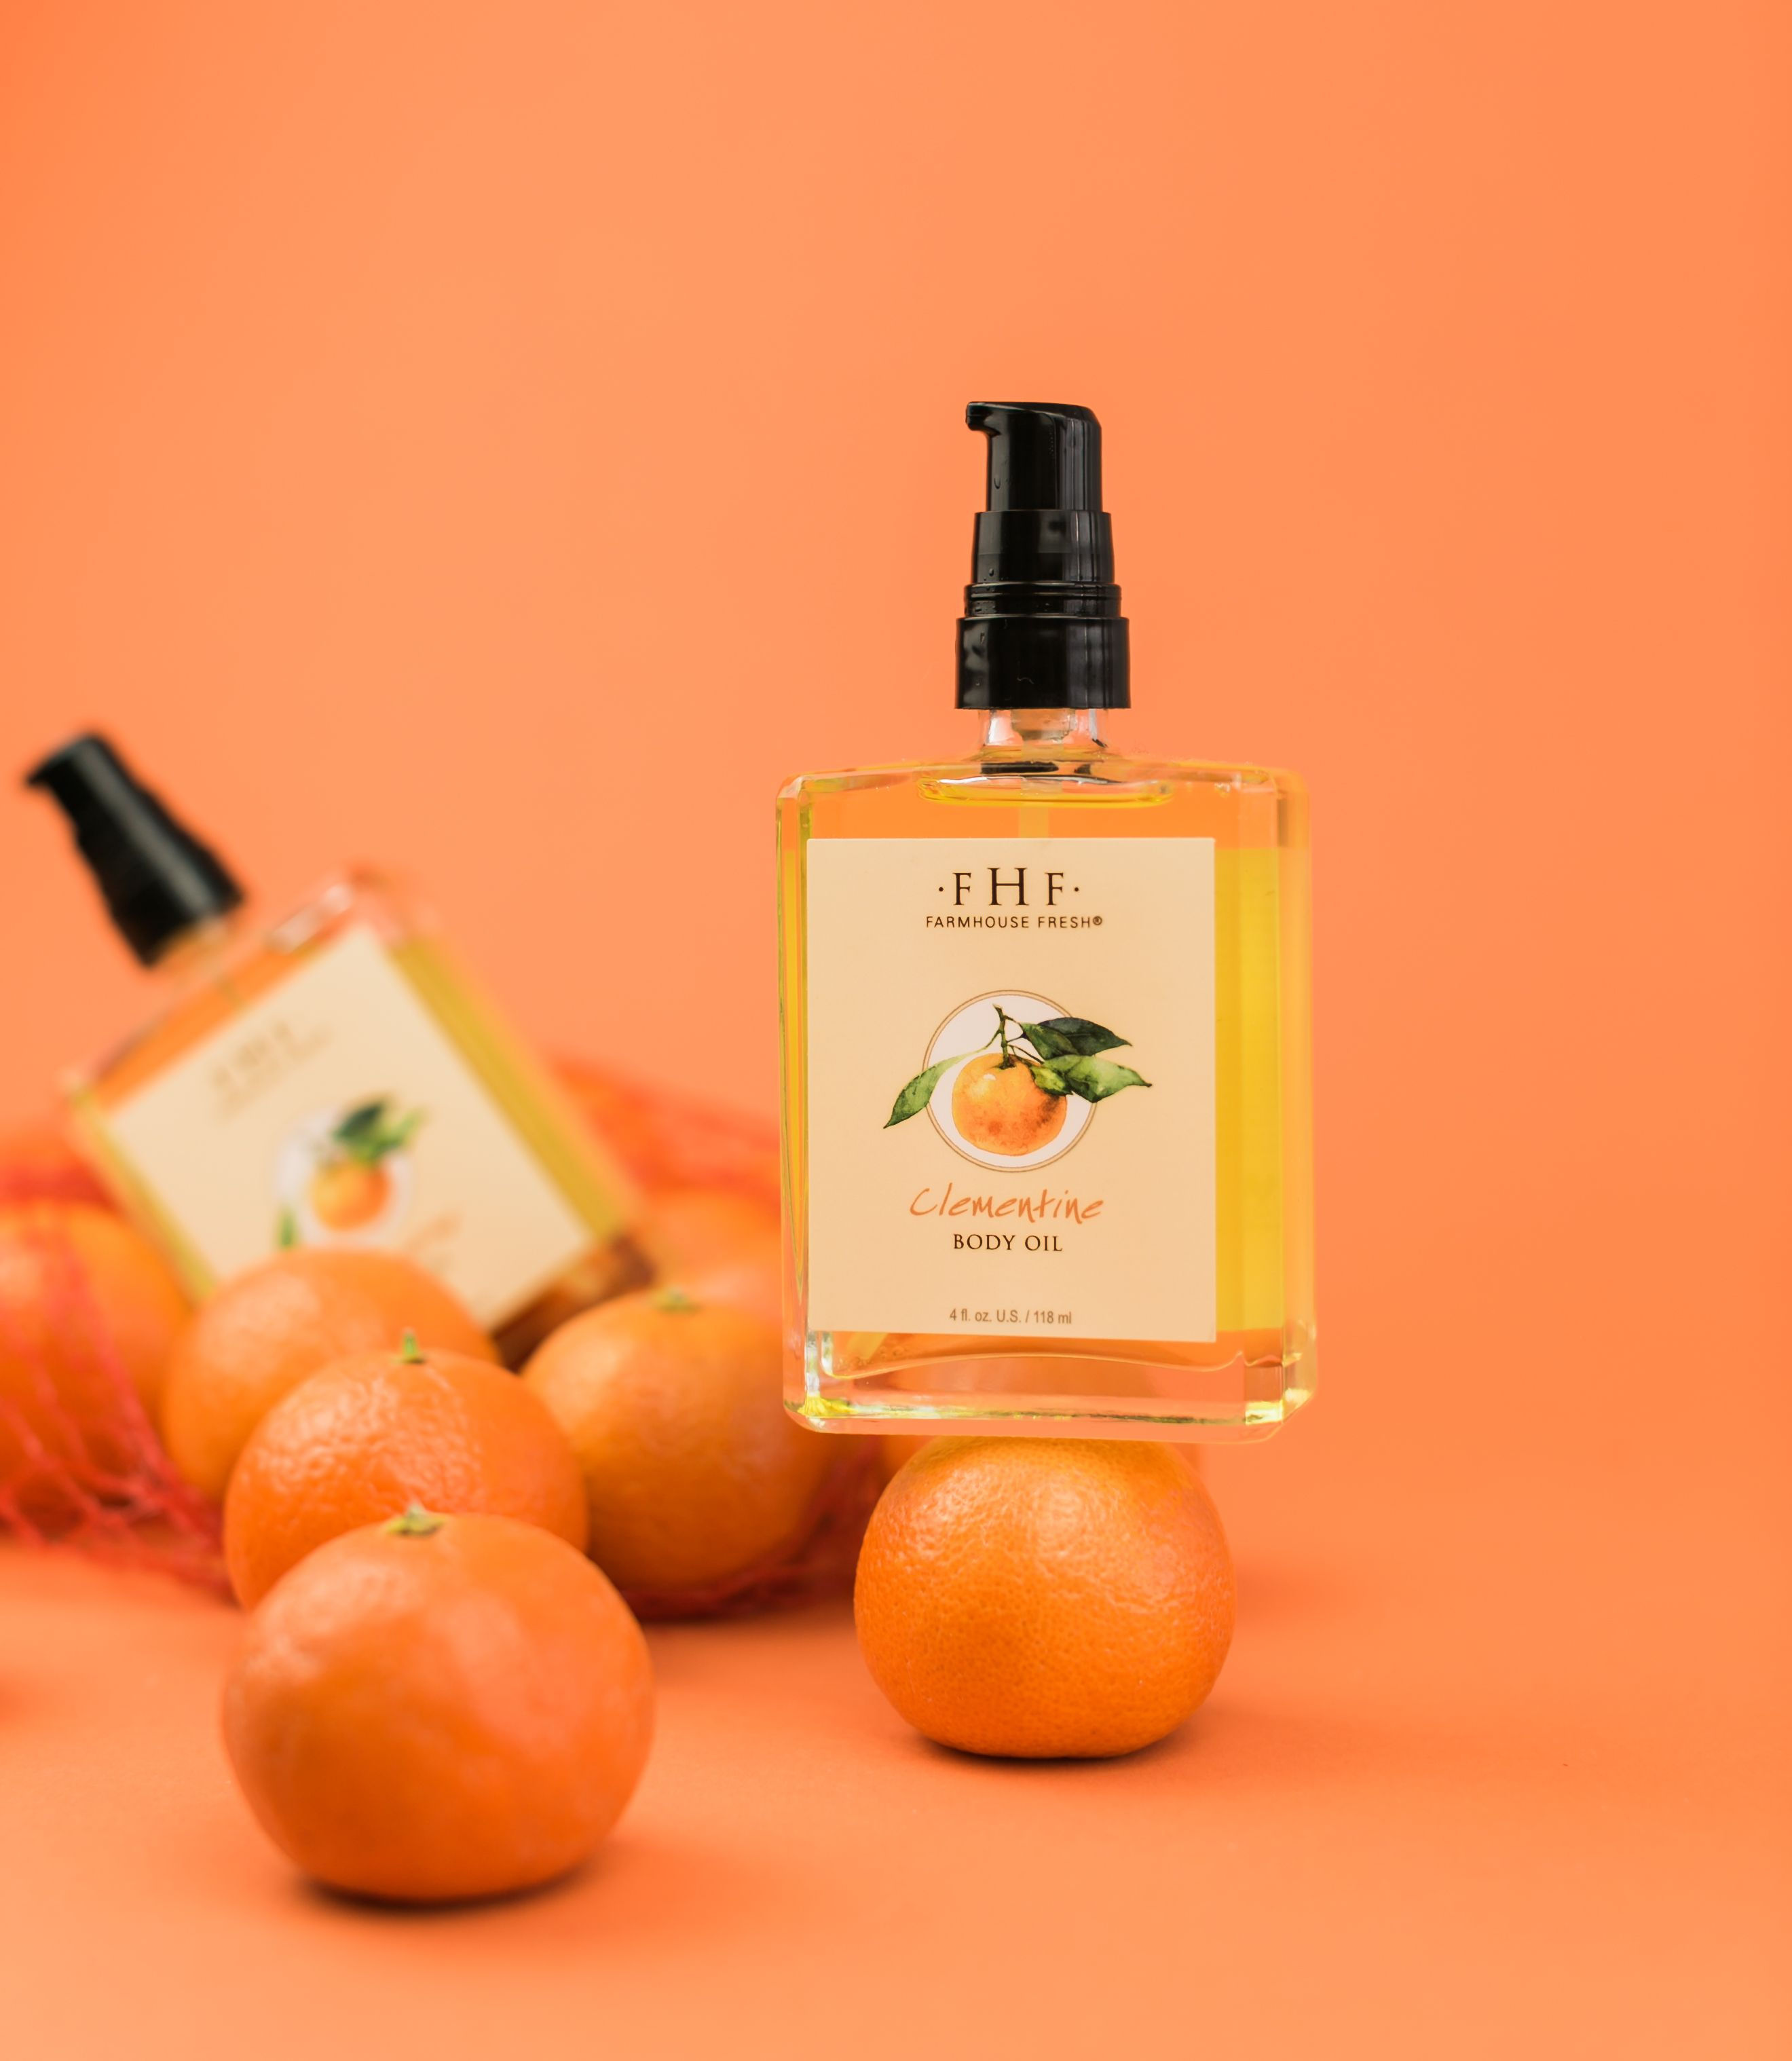 Clementine Body Oil in 2020 Body oil, Olive fruit, Oils